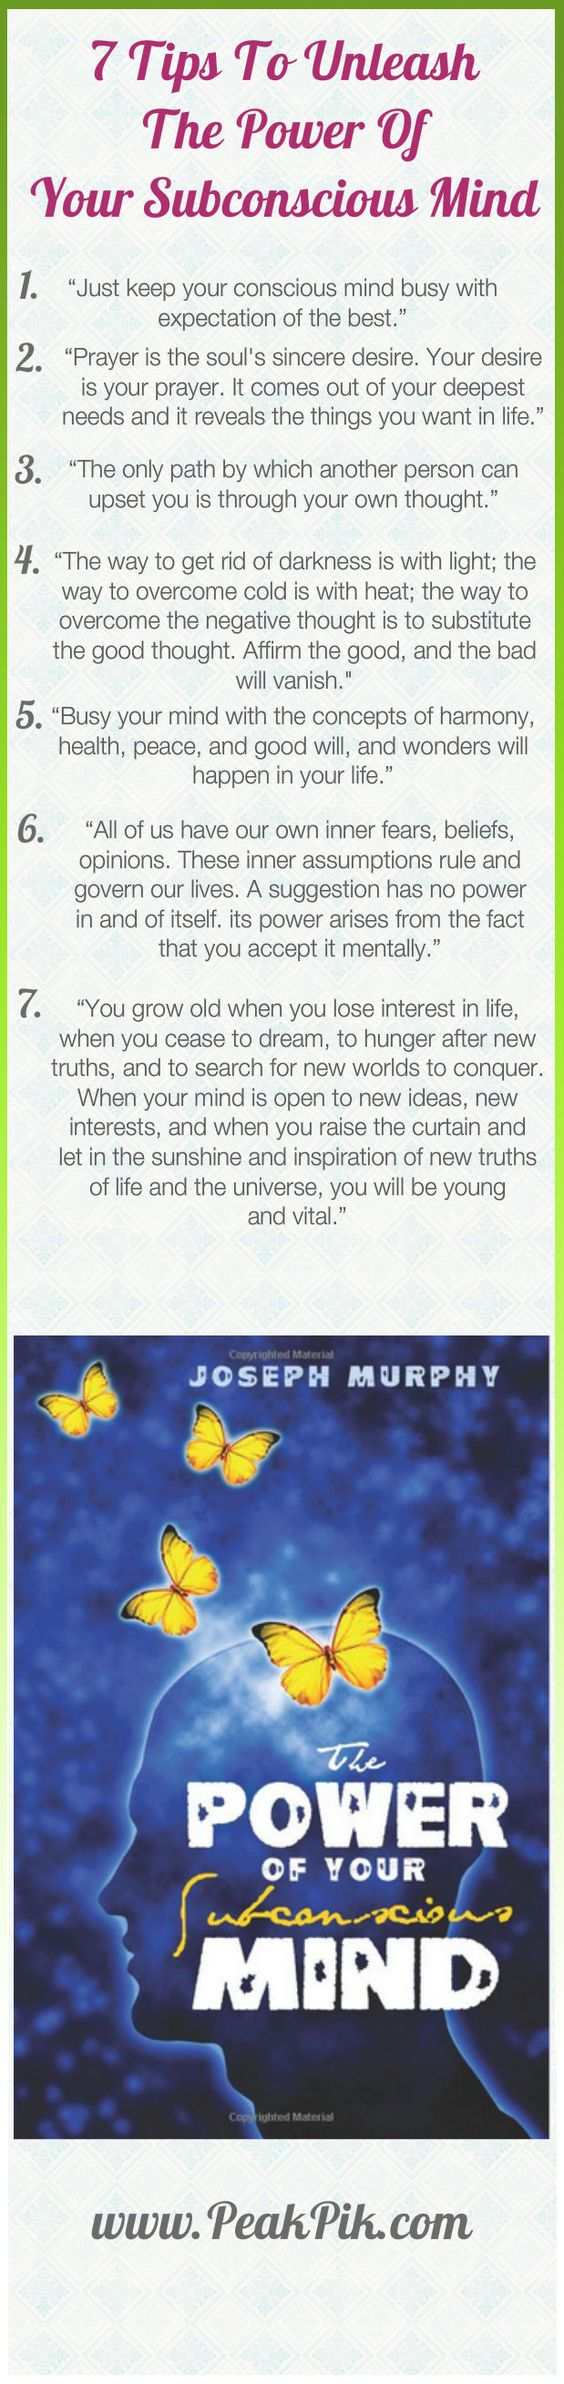 Daily Tips And Motivation   Power Of Positive Thinking-How To Unleash Your Subconscious Mind's Pow